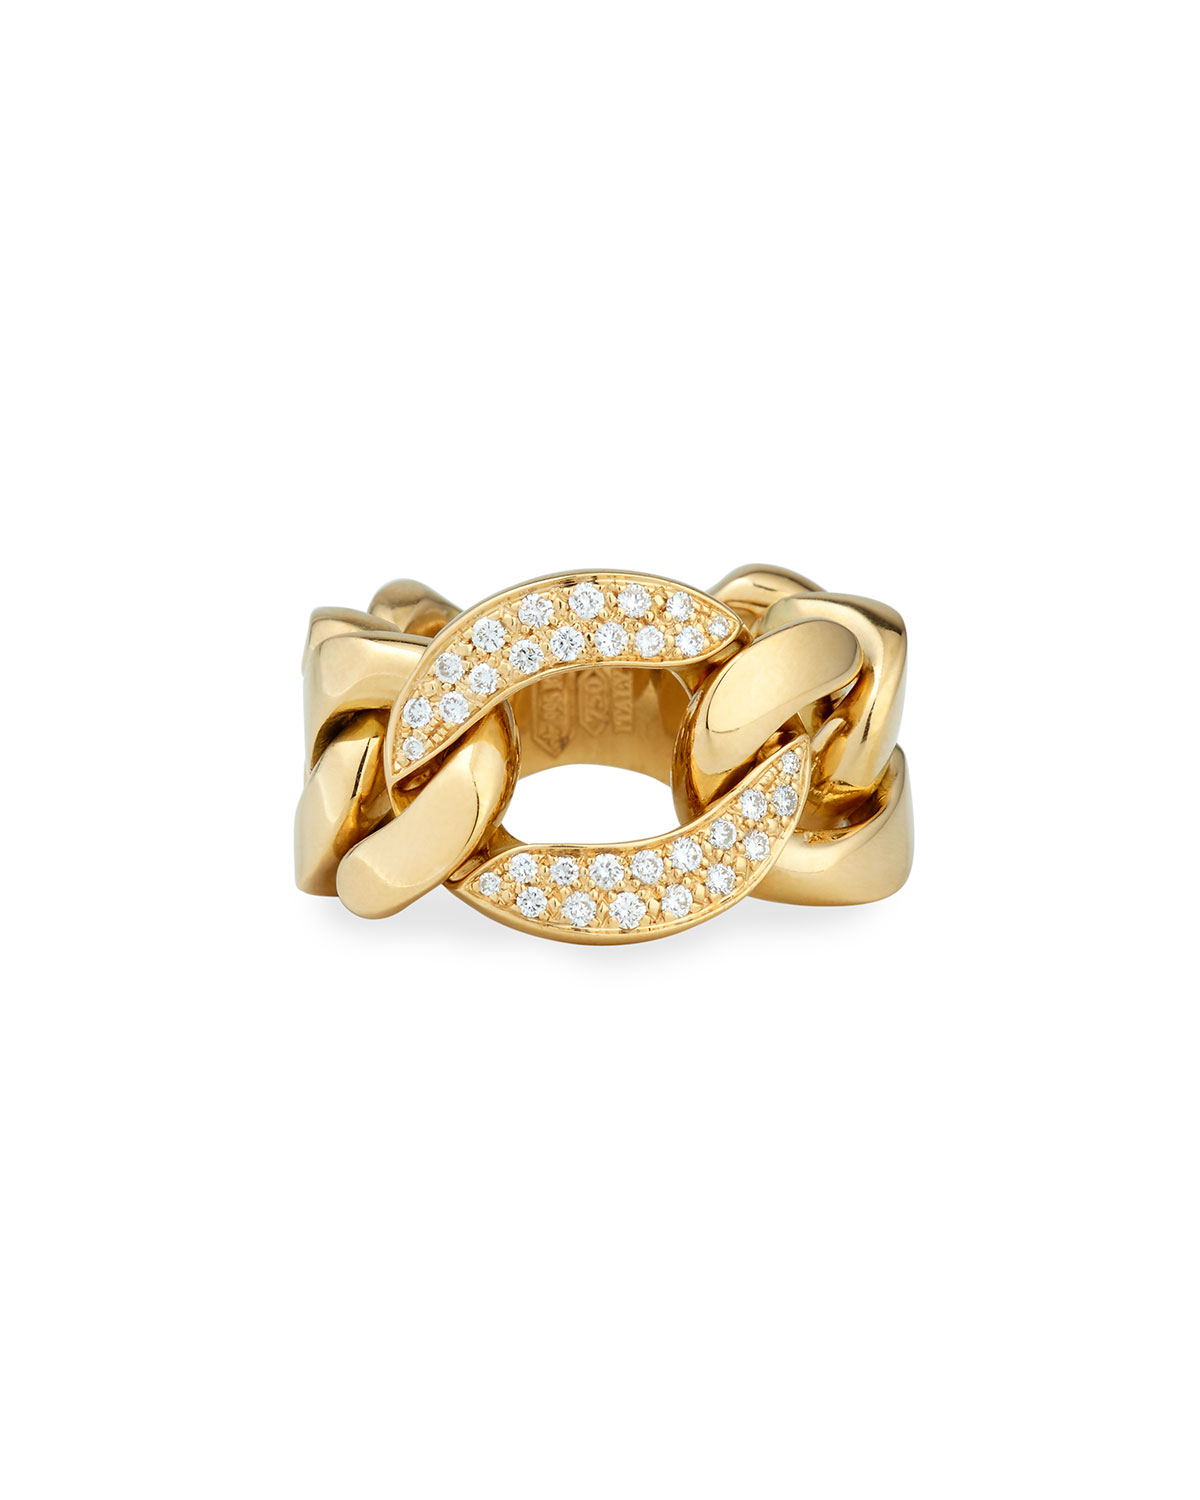 BESSA 18K GOLD CURB CHAIN LINK DIAMOND RING, SIZE 6.5